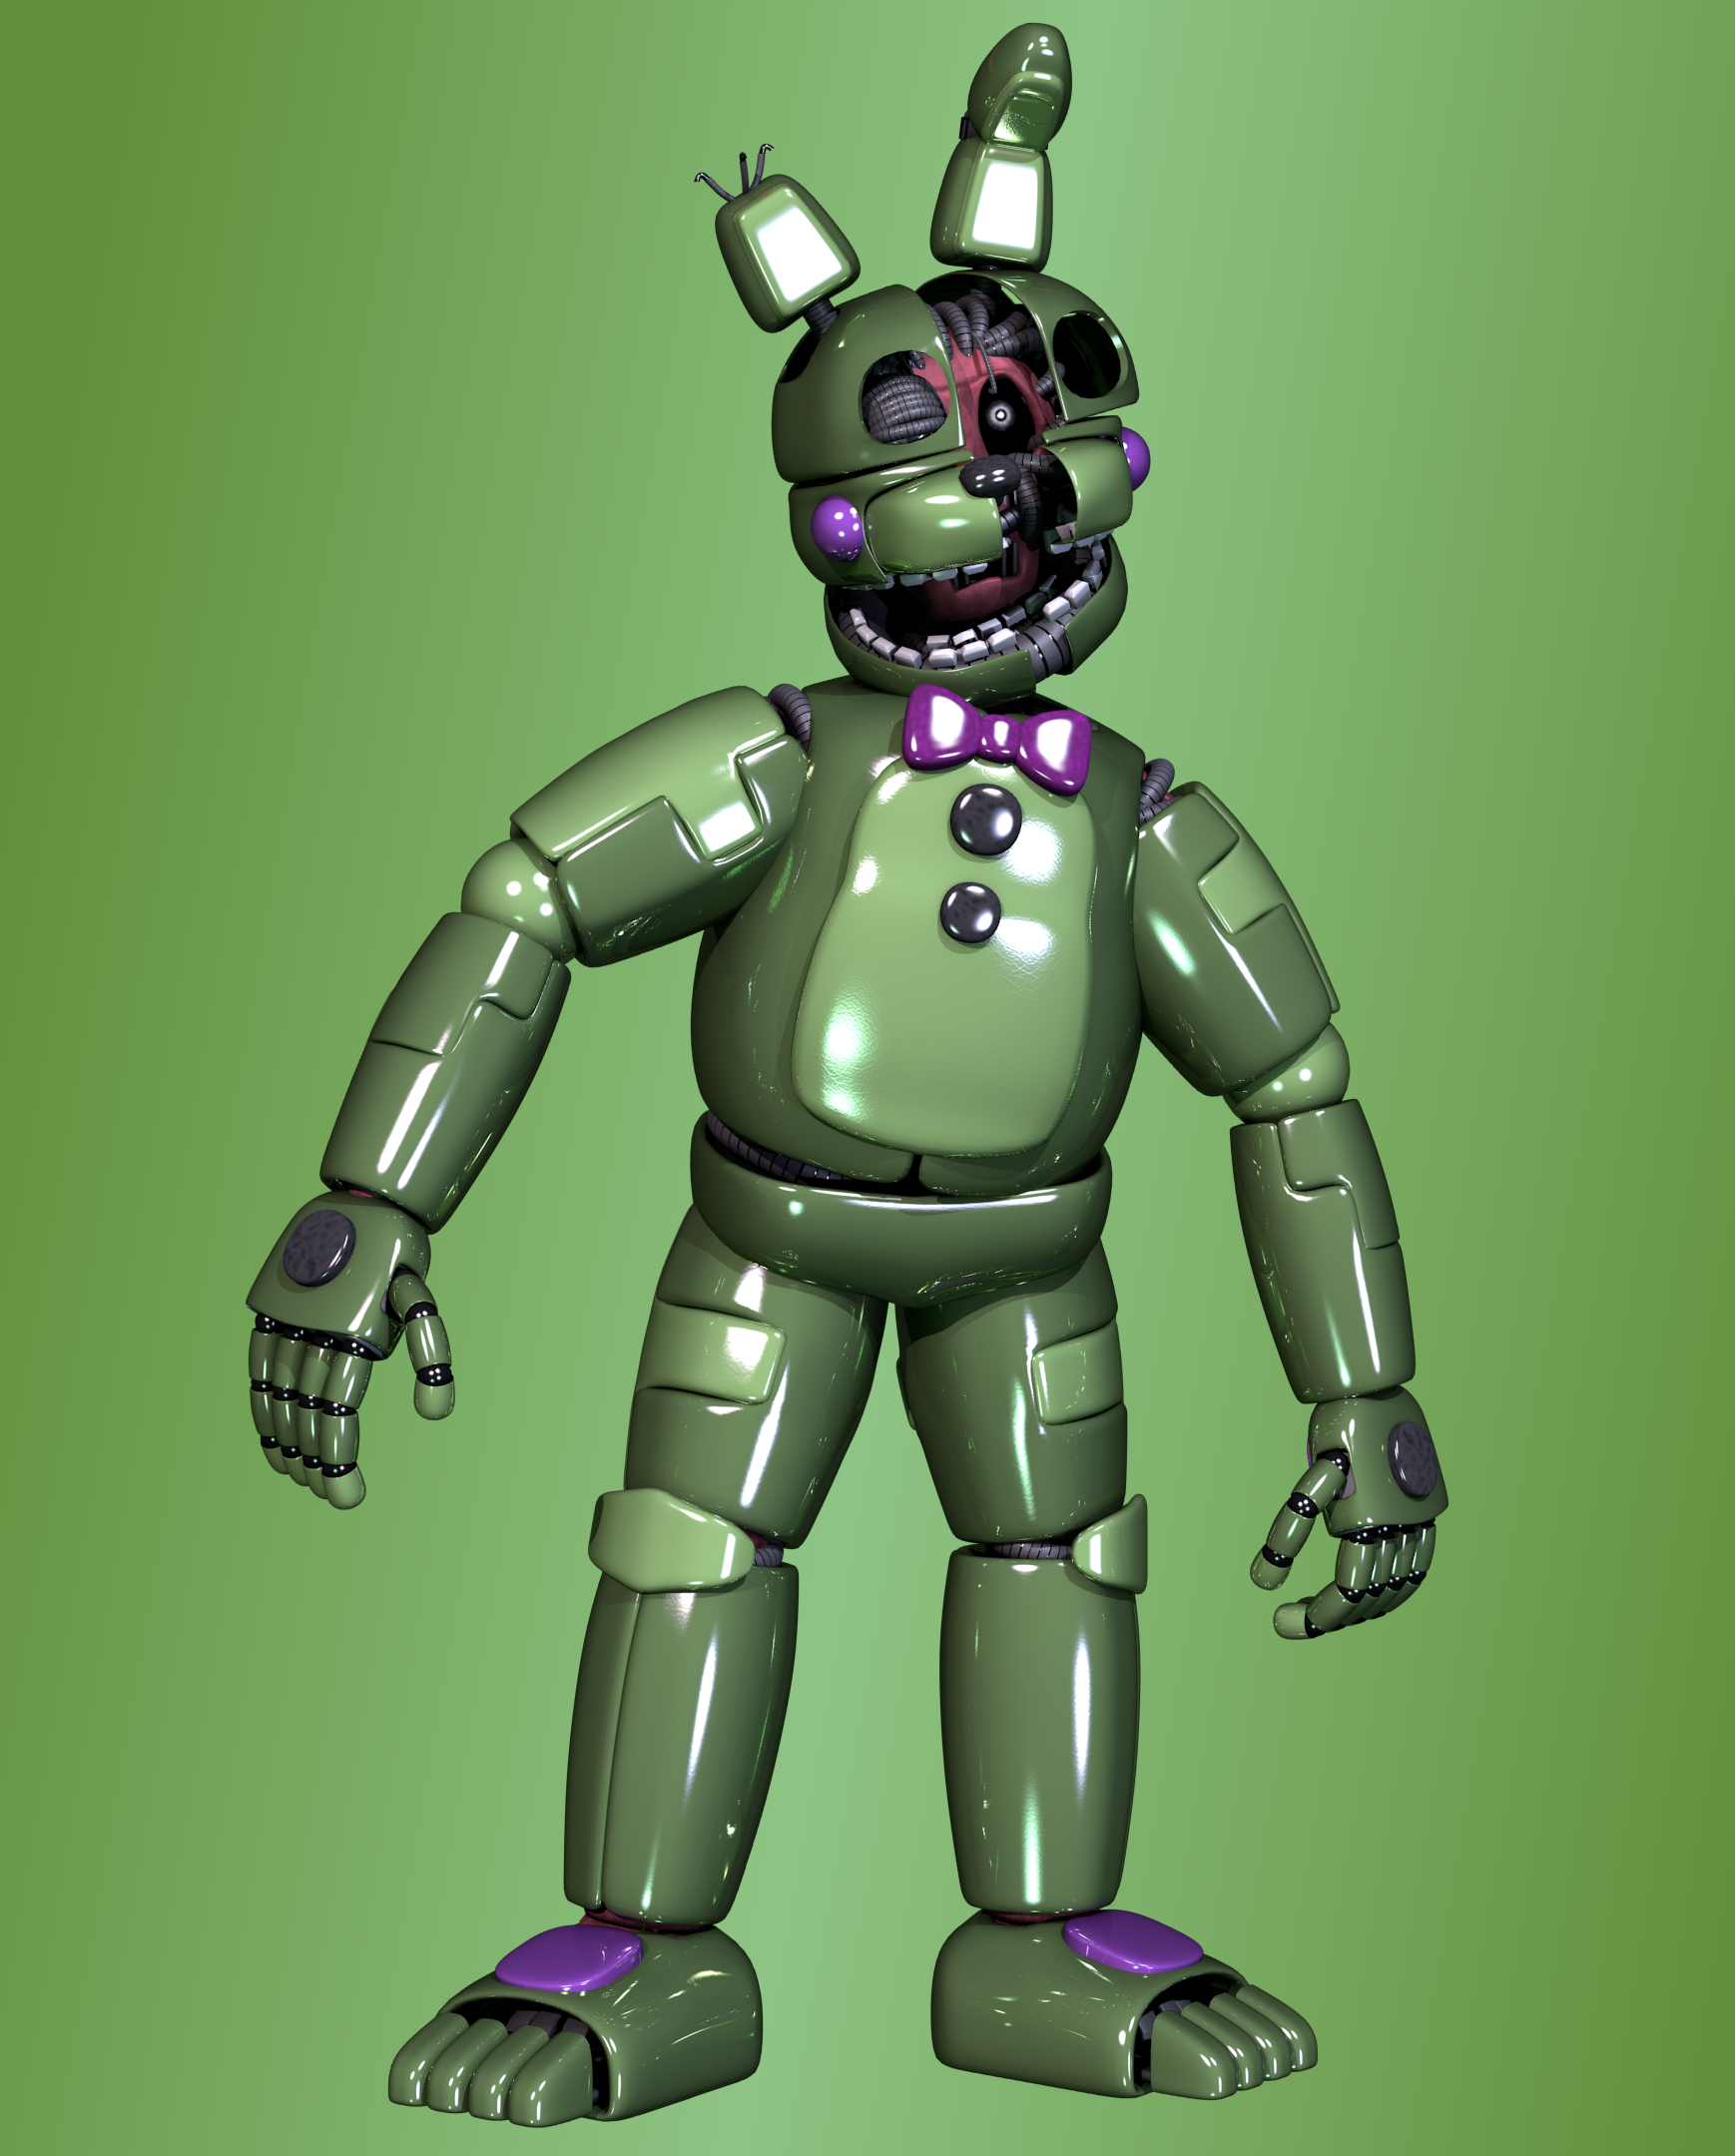 Springbonnie Time Fun Pictures To Pin On Pinterest